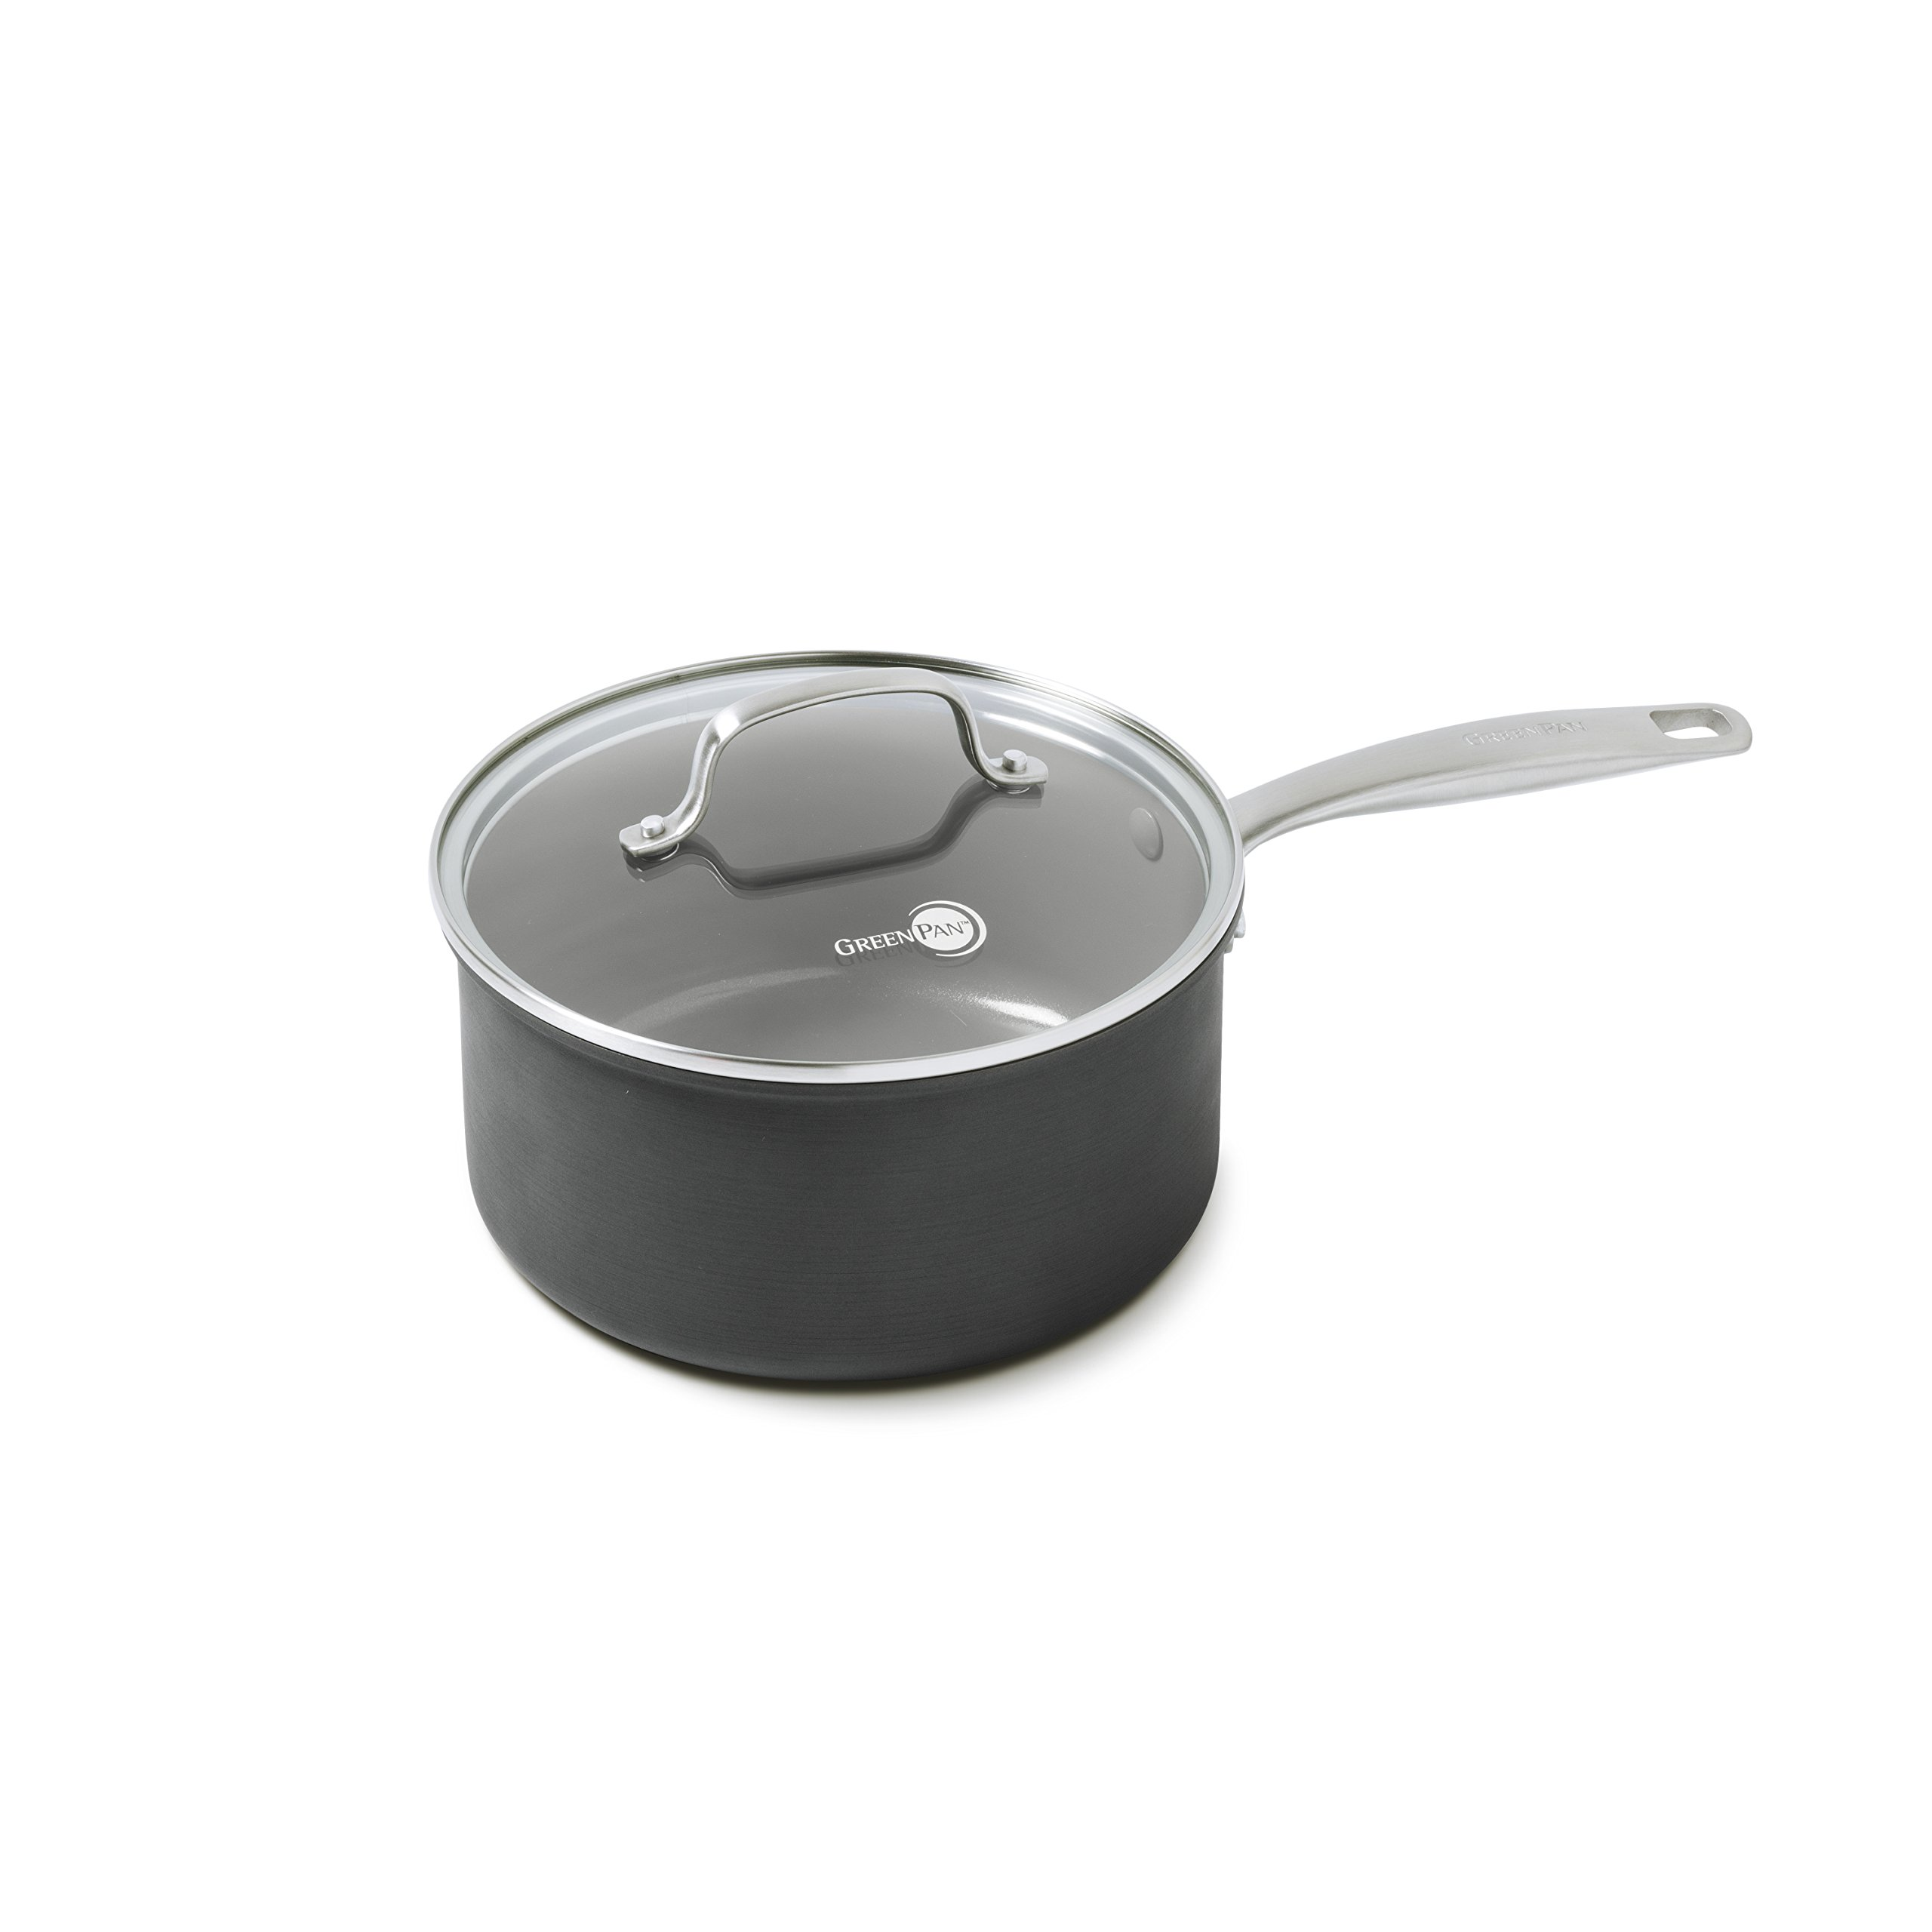 GreenPan Chatham Ceramic Non-Stick Covered Saucepan, 3 quart, Grey